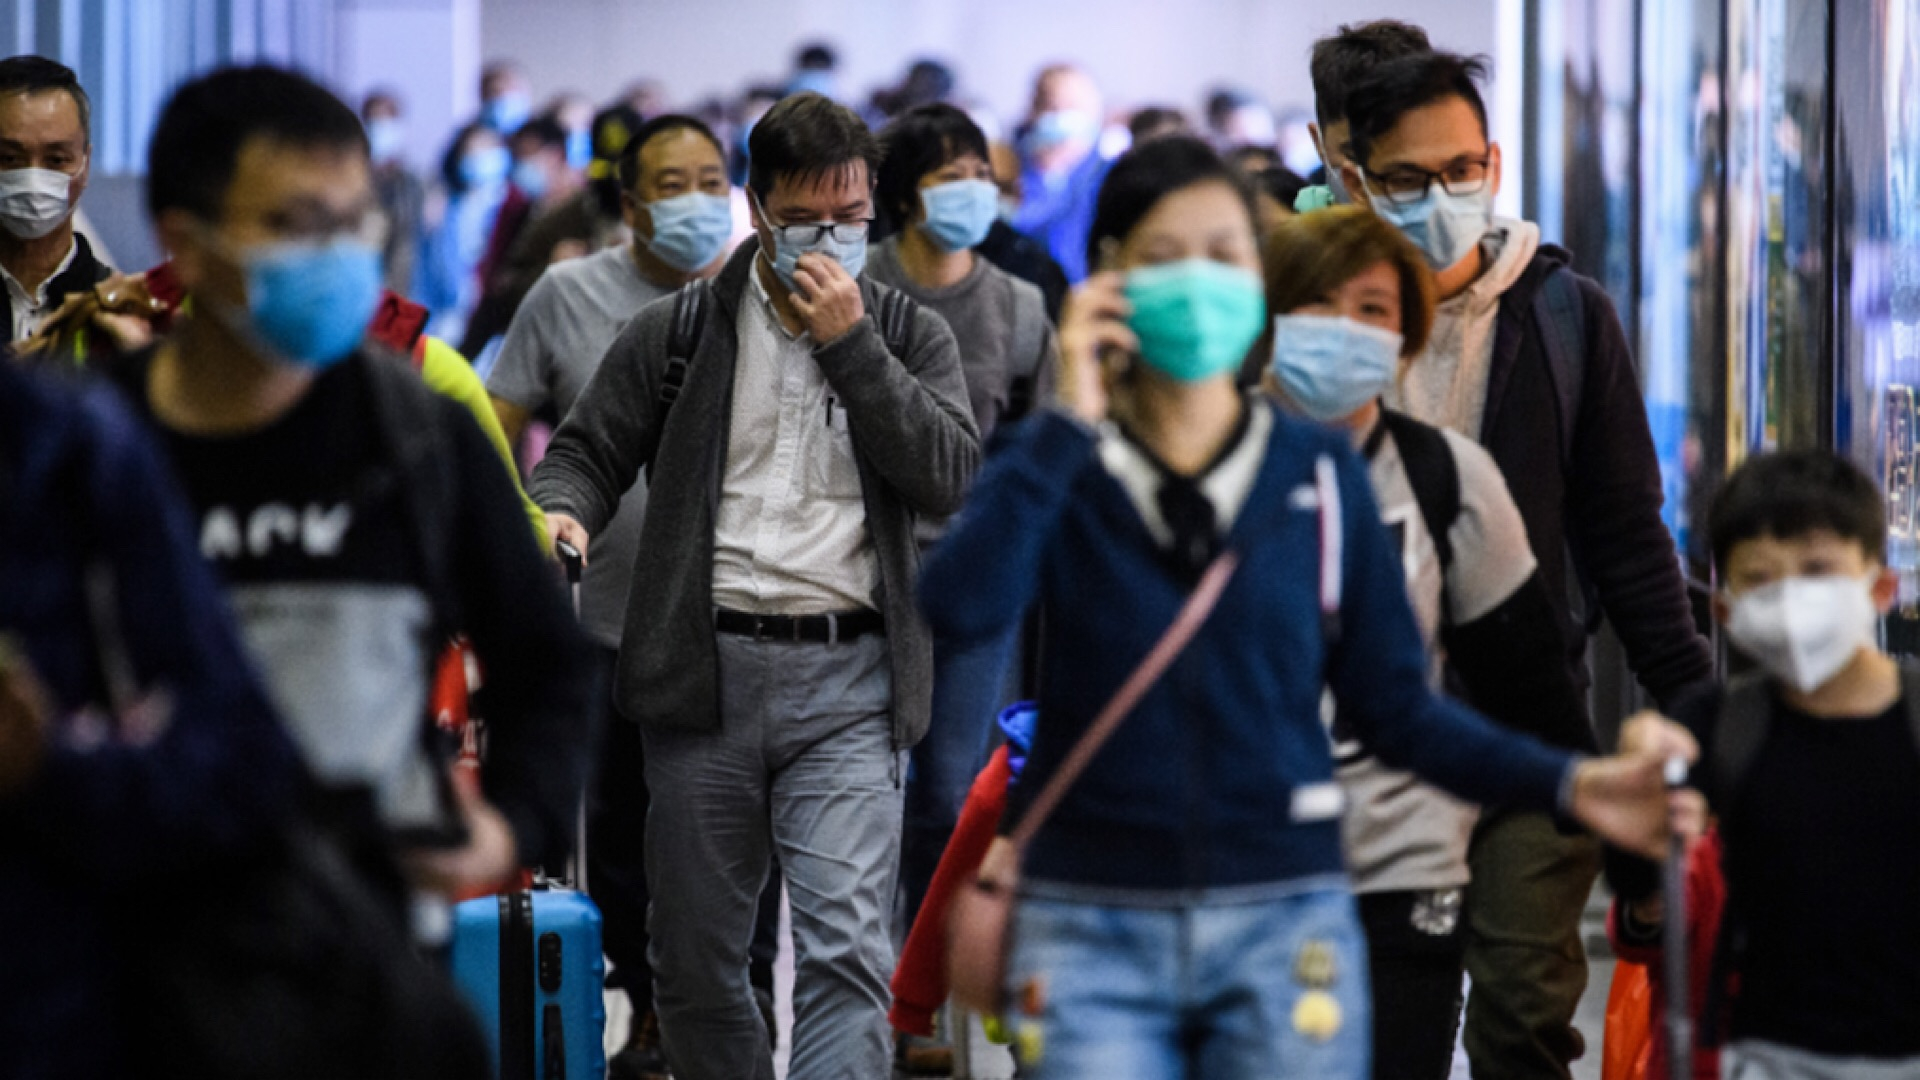 Foreign political party leaders appreciate China's readiness to share experience on epidemic control